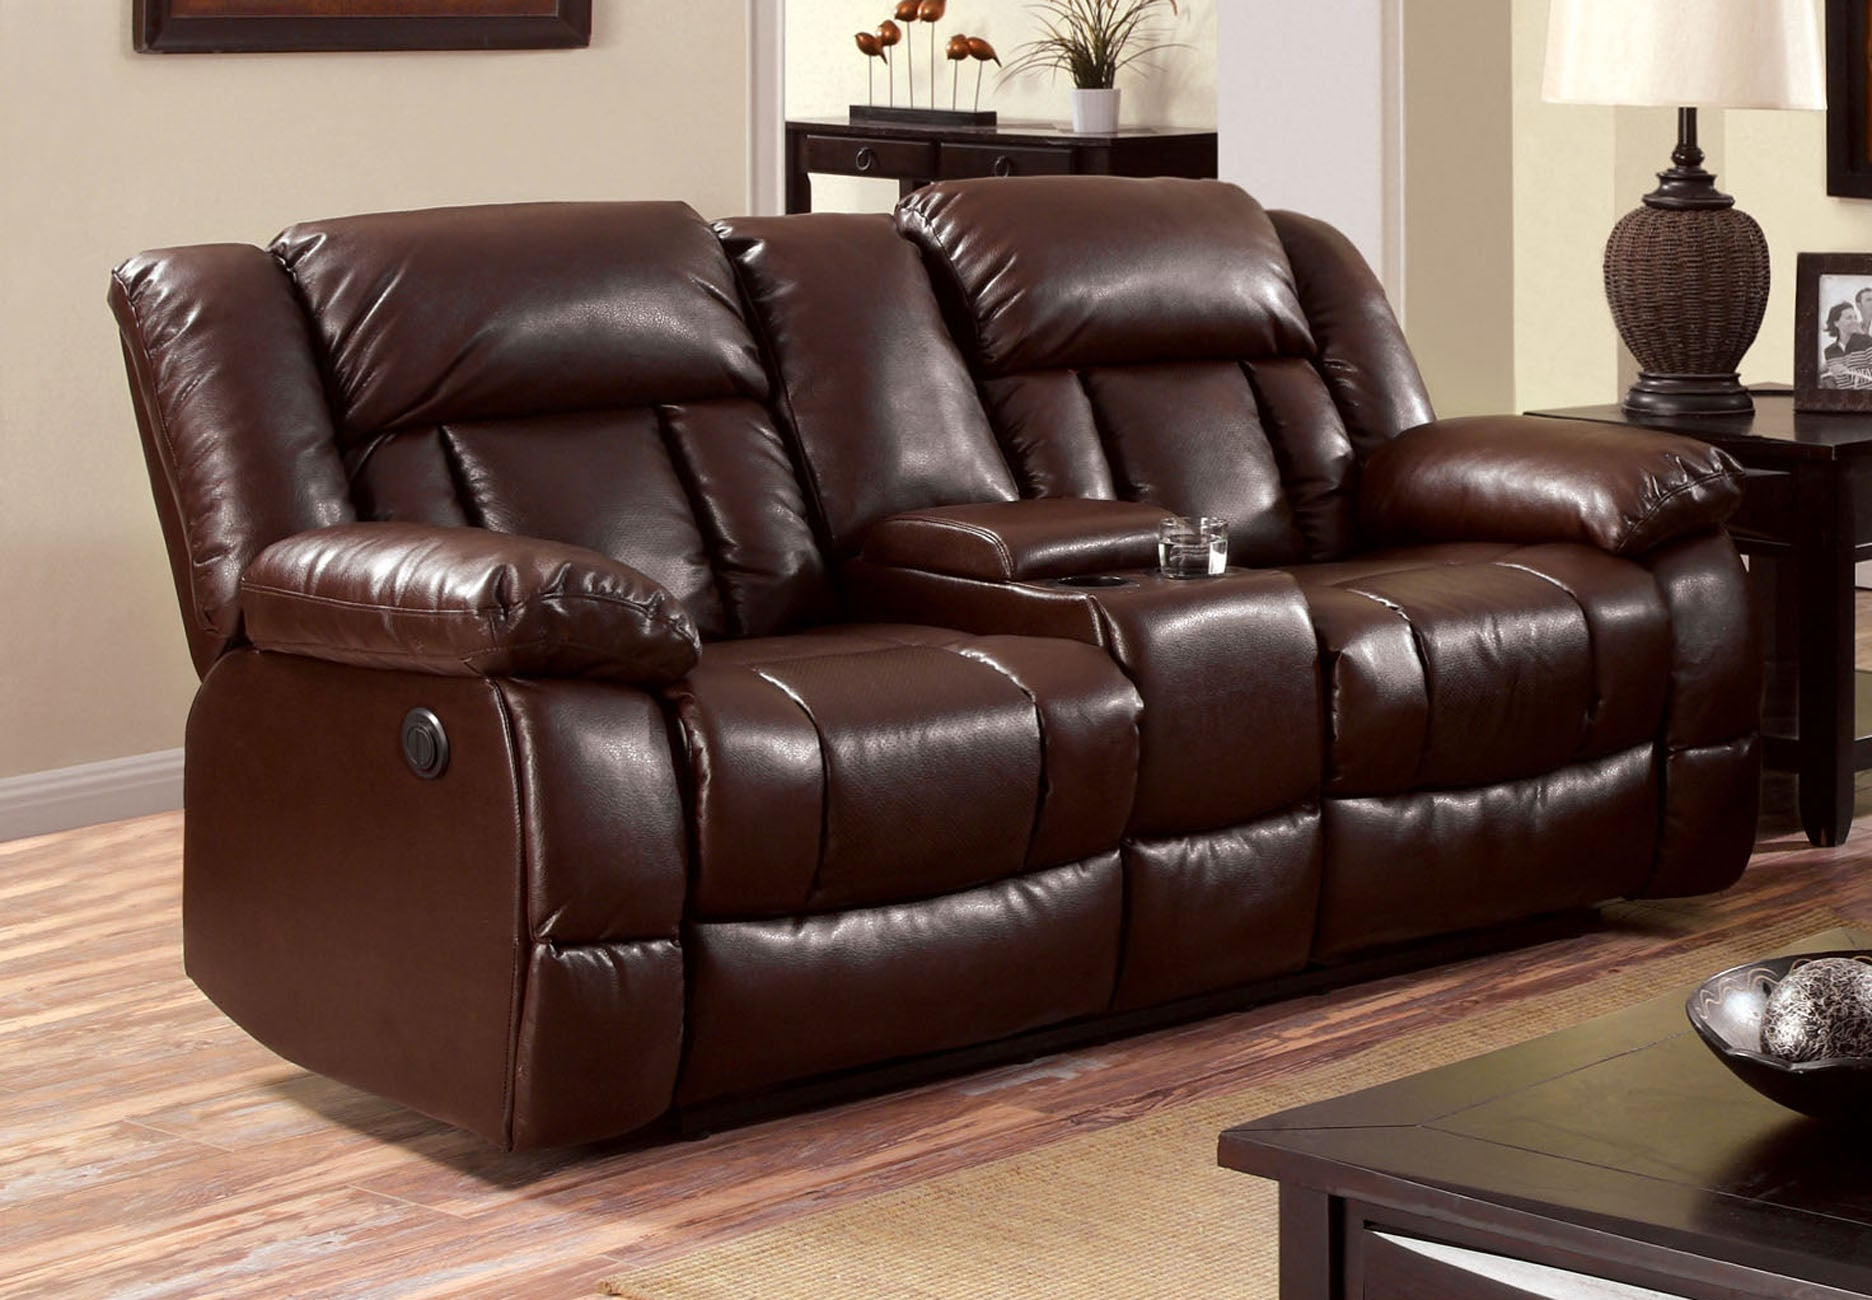 Jonas Transitional Bonded Leather Recliner Loveseat, Brown